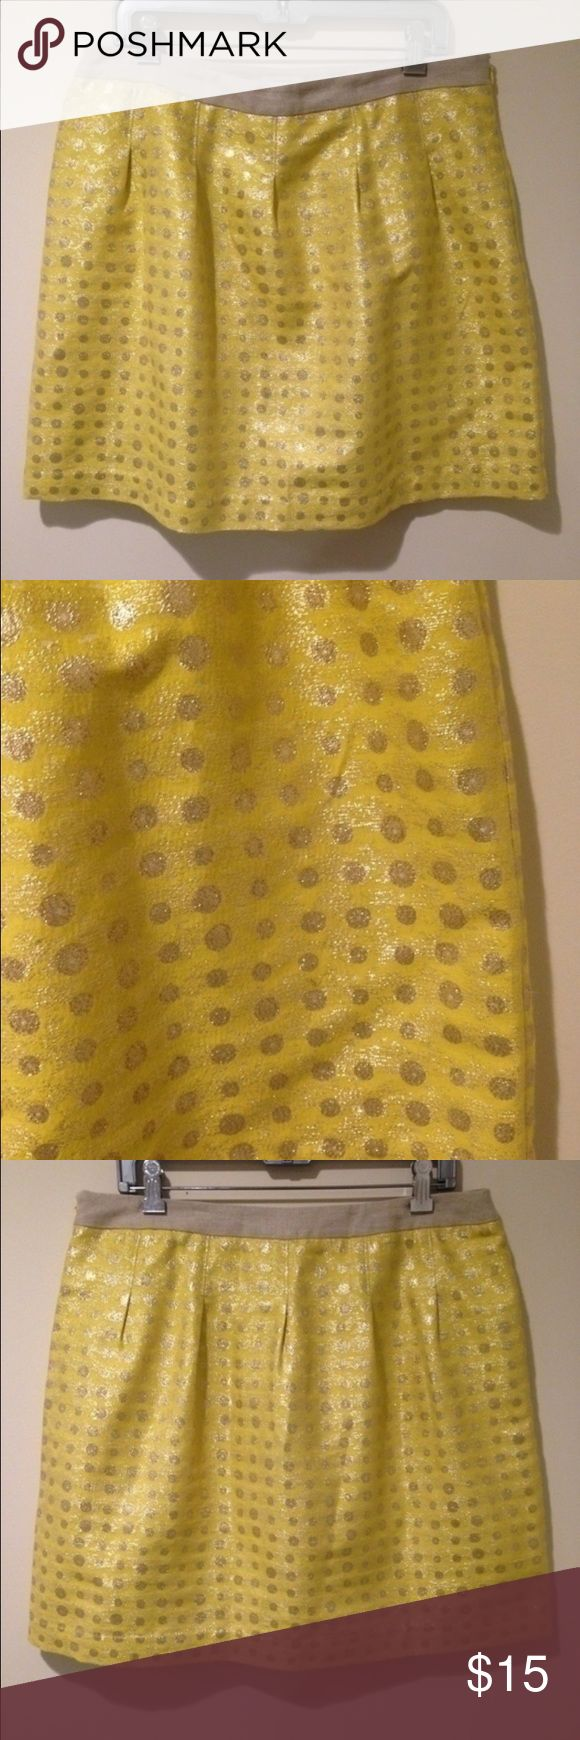 Loft Sparkly Lemonade Polkadot Skirt Add a pop of color to your skirt collection! Bright yellow featuring a light gold sparkle dust effect throughout. Shimmery metallic gold polkadots. Polyester lining, side zip closure. Exterior material is cotton, polyester and nylon. LOFT Skirts